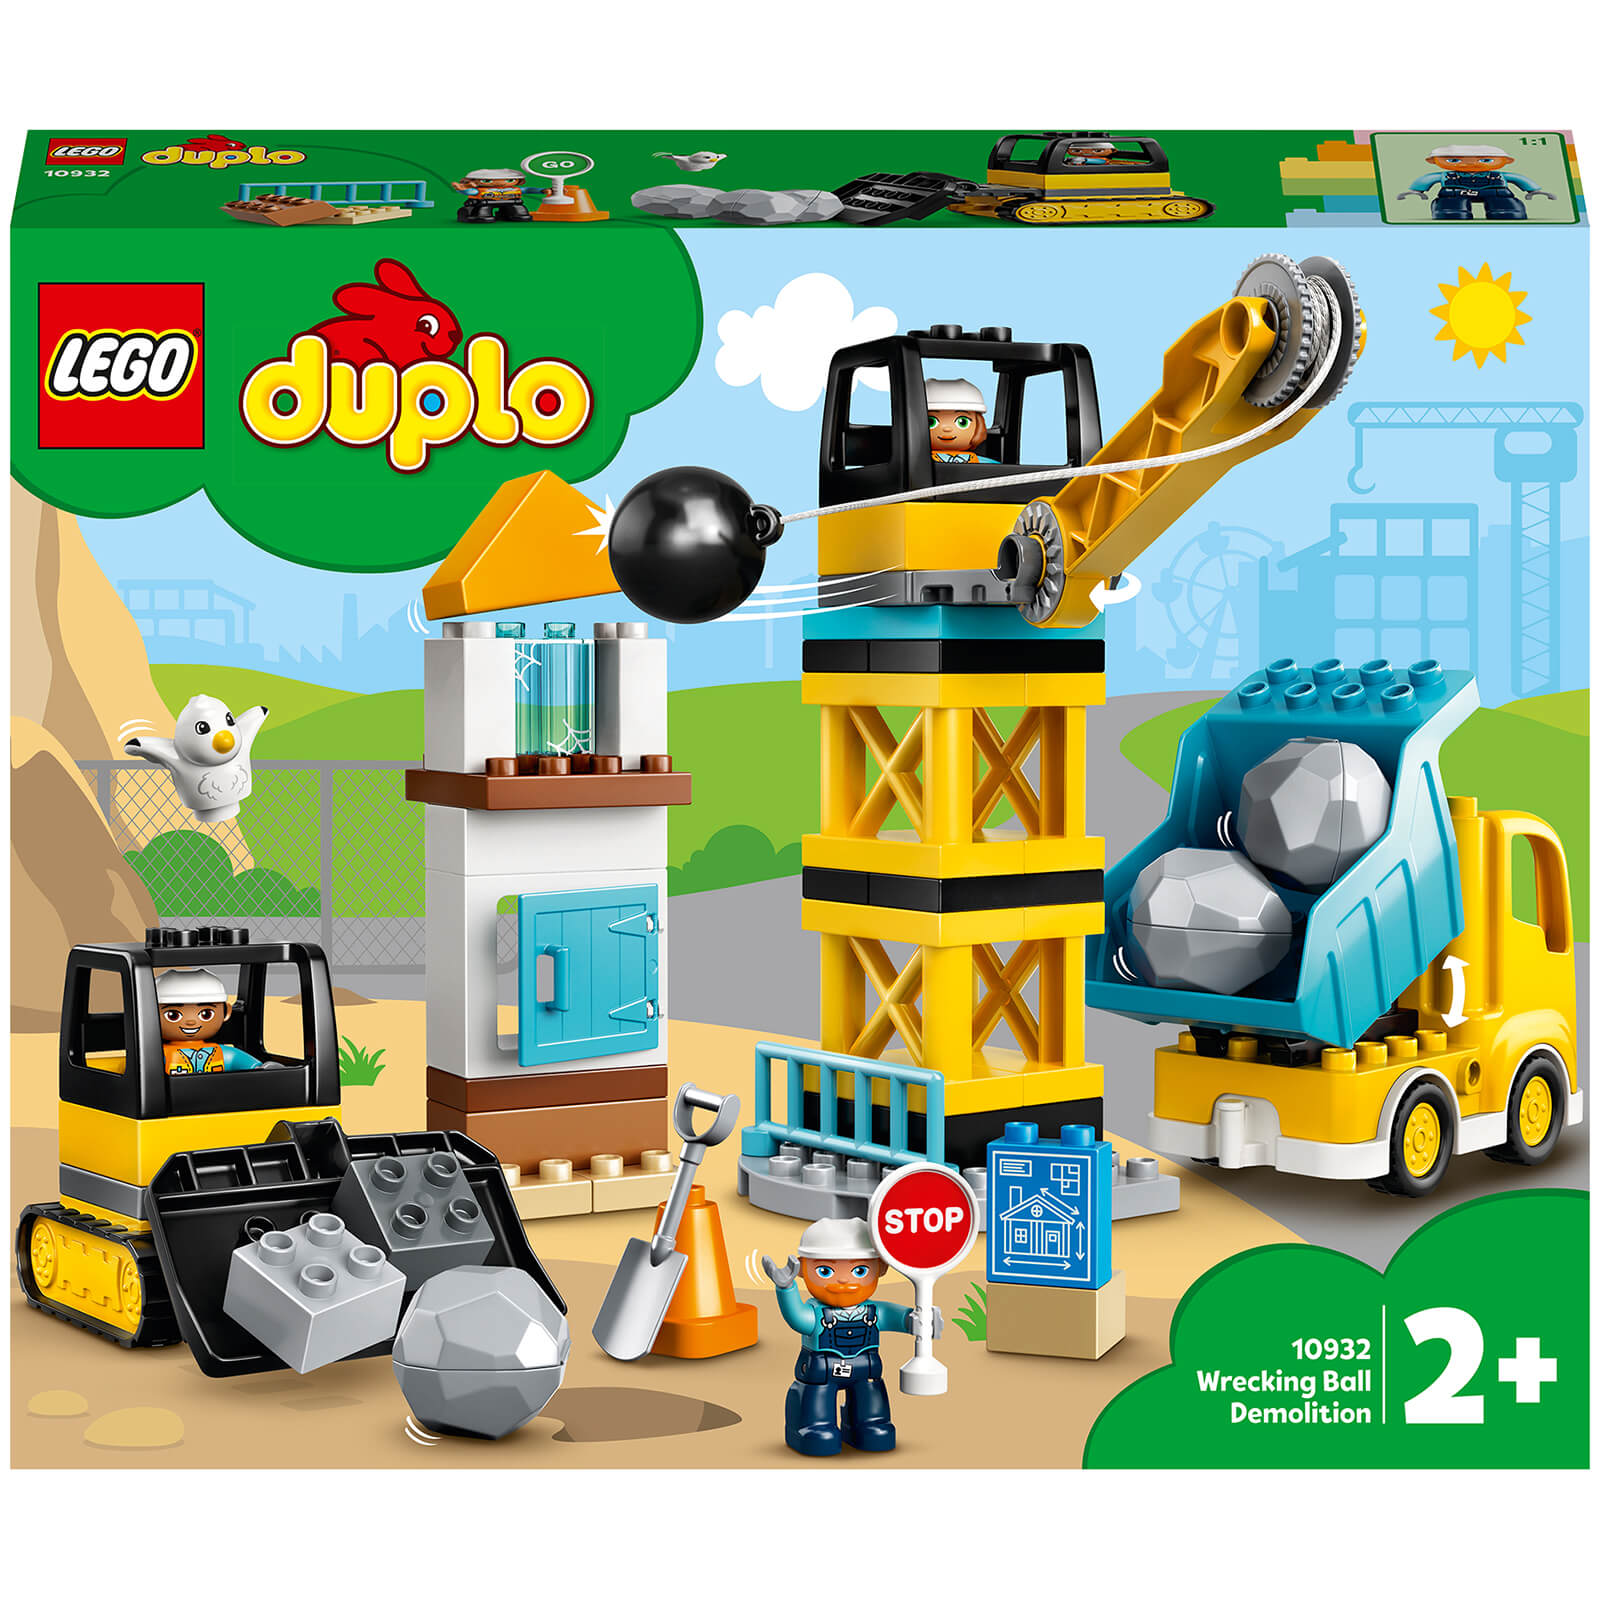 Image of 10932 LEGO® DUPLO® Construction site with demolition bulb